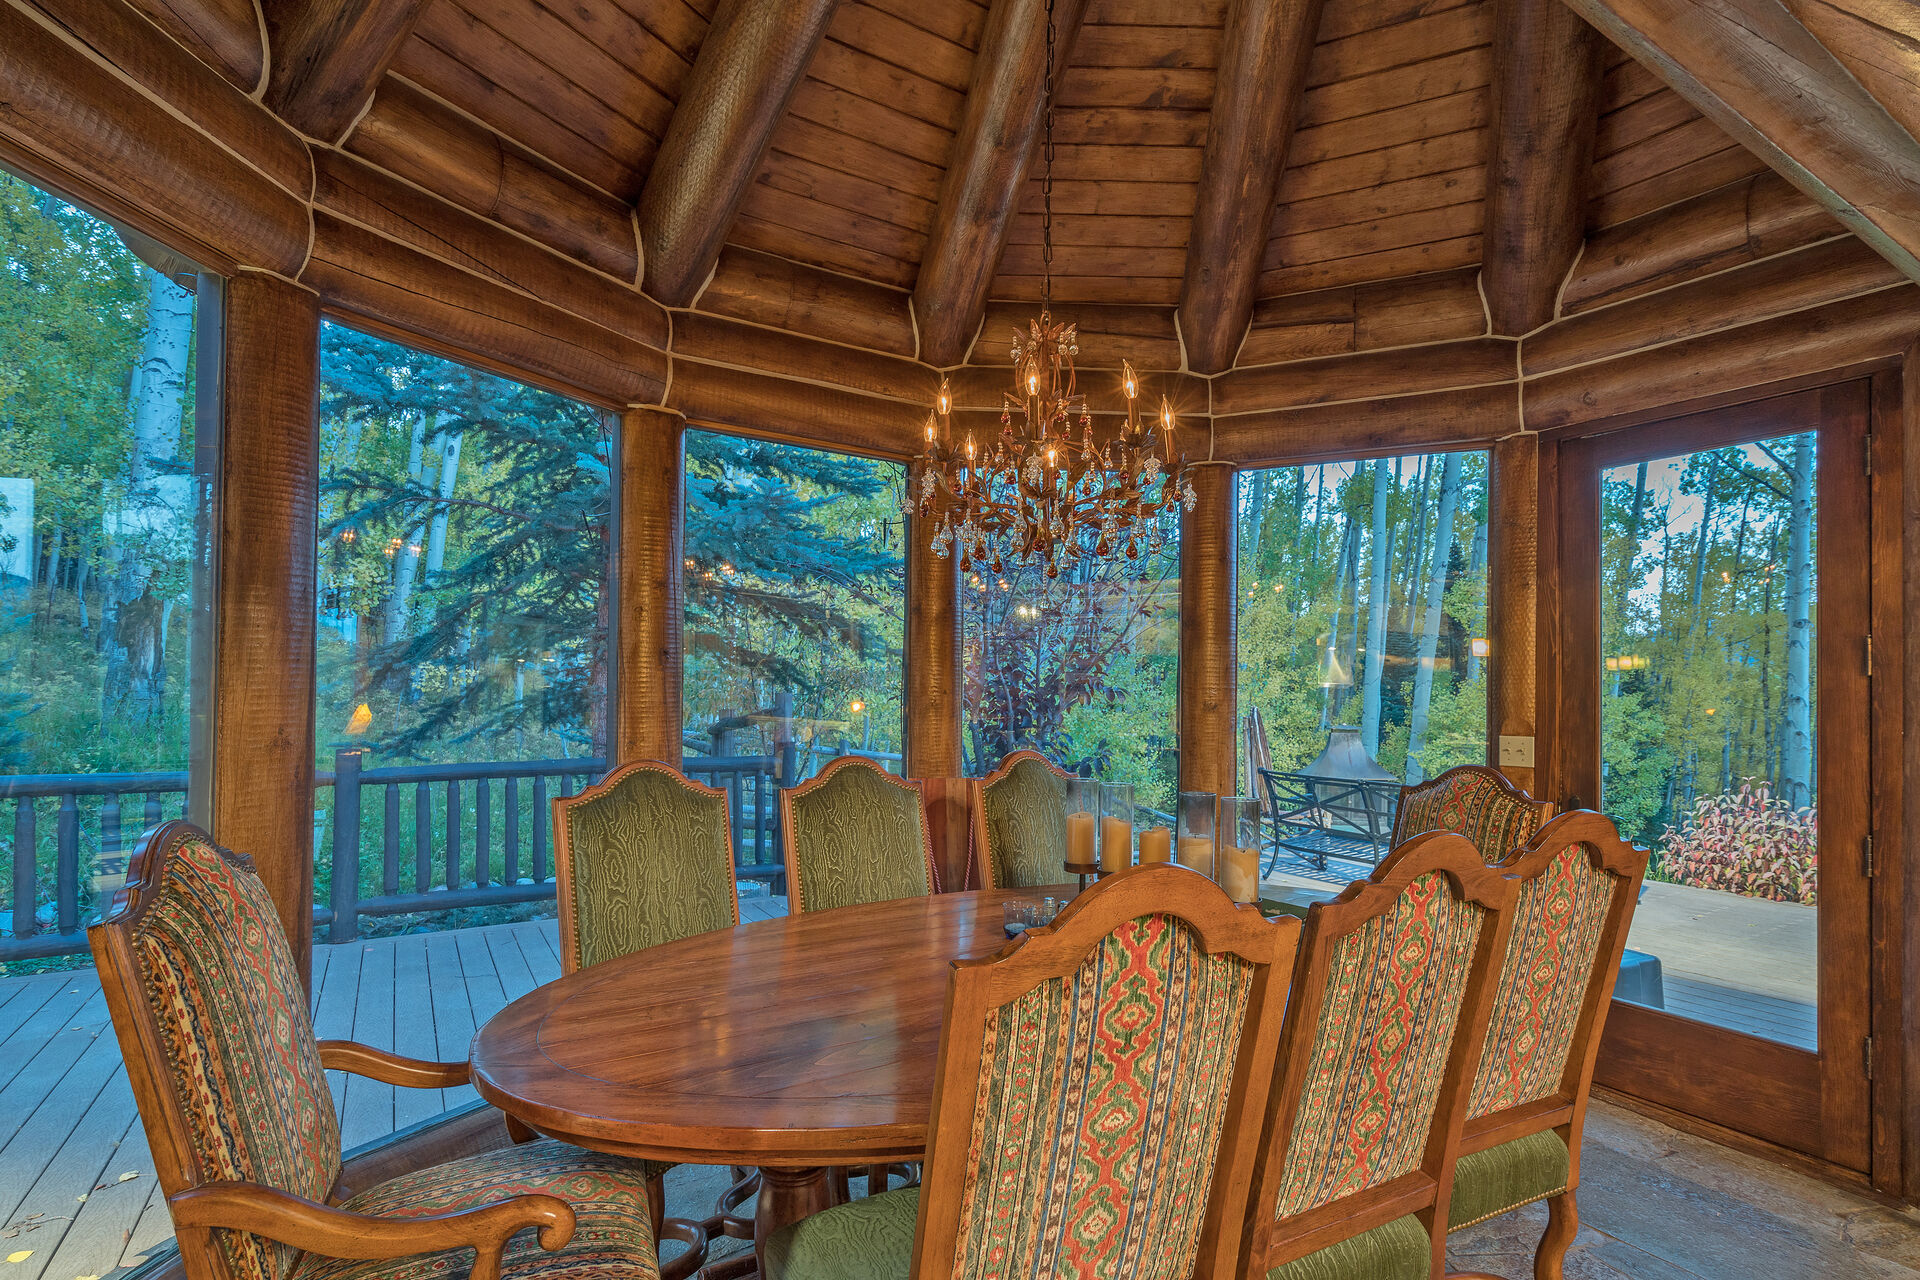 Dining Area for 8 Surrounded by Windows with Views of the Forest